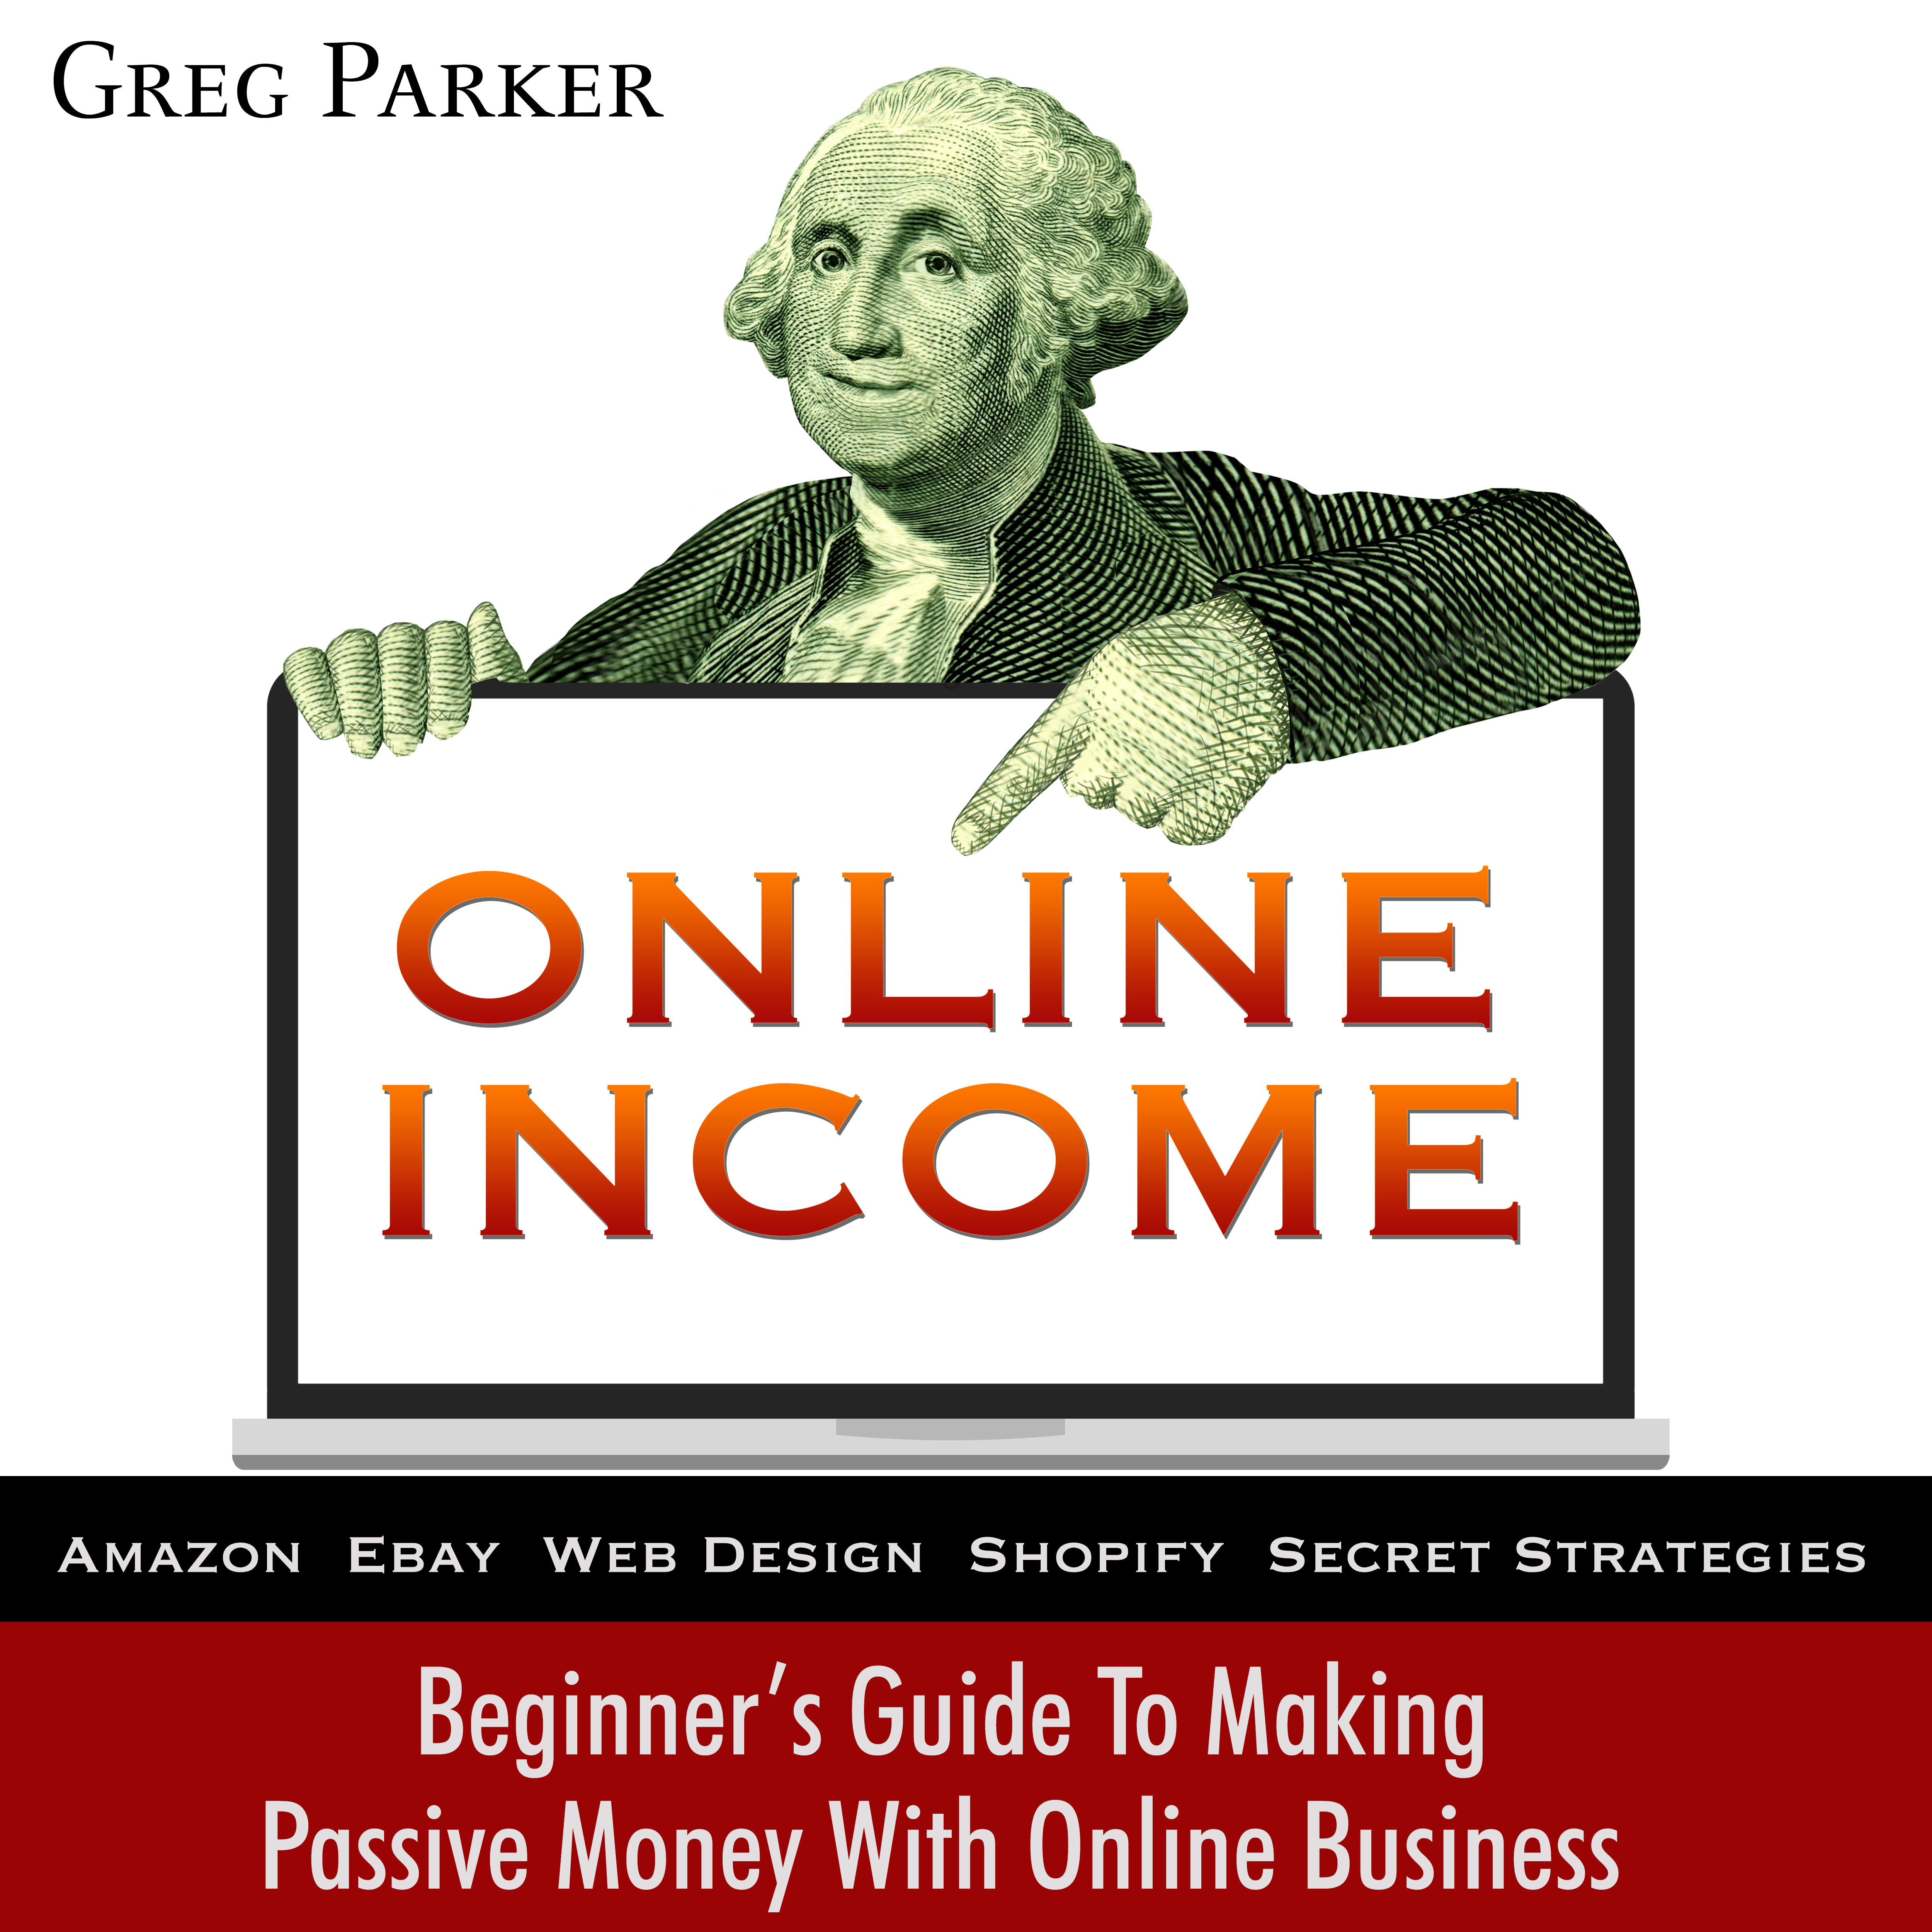 Online Income Beginner S Guide To Making Passive Money With Online Business Amazon Ebay Web Design Shopify Secret Strategies Audiobook Listen Instantly